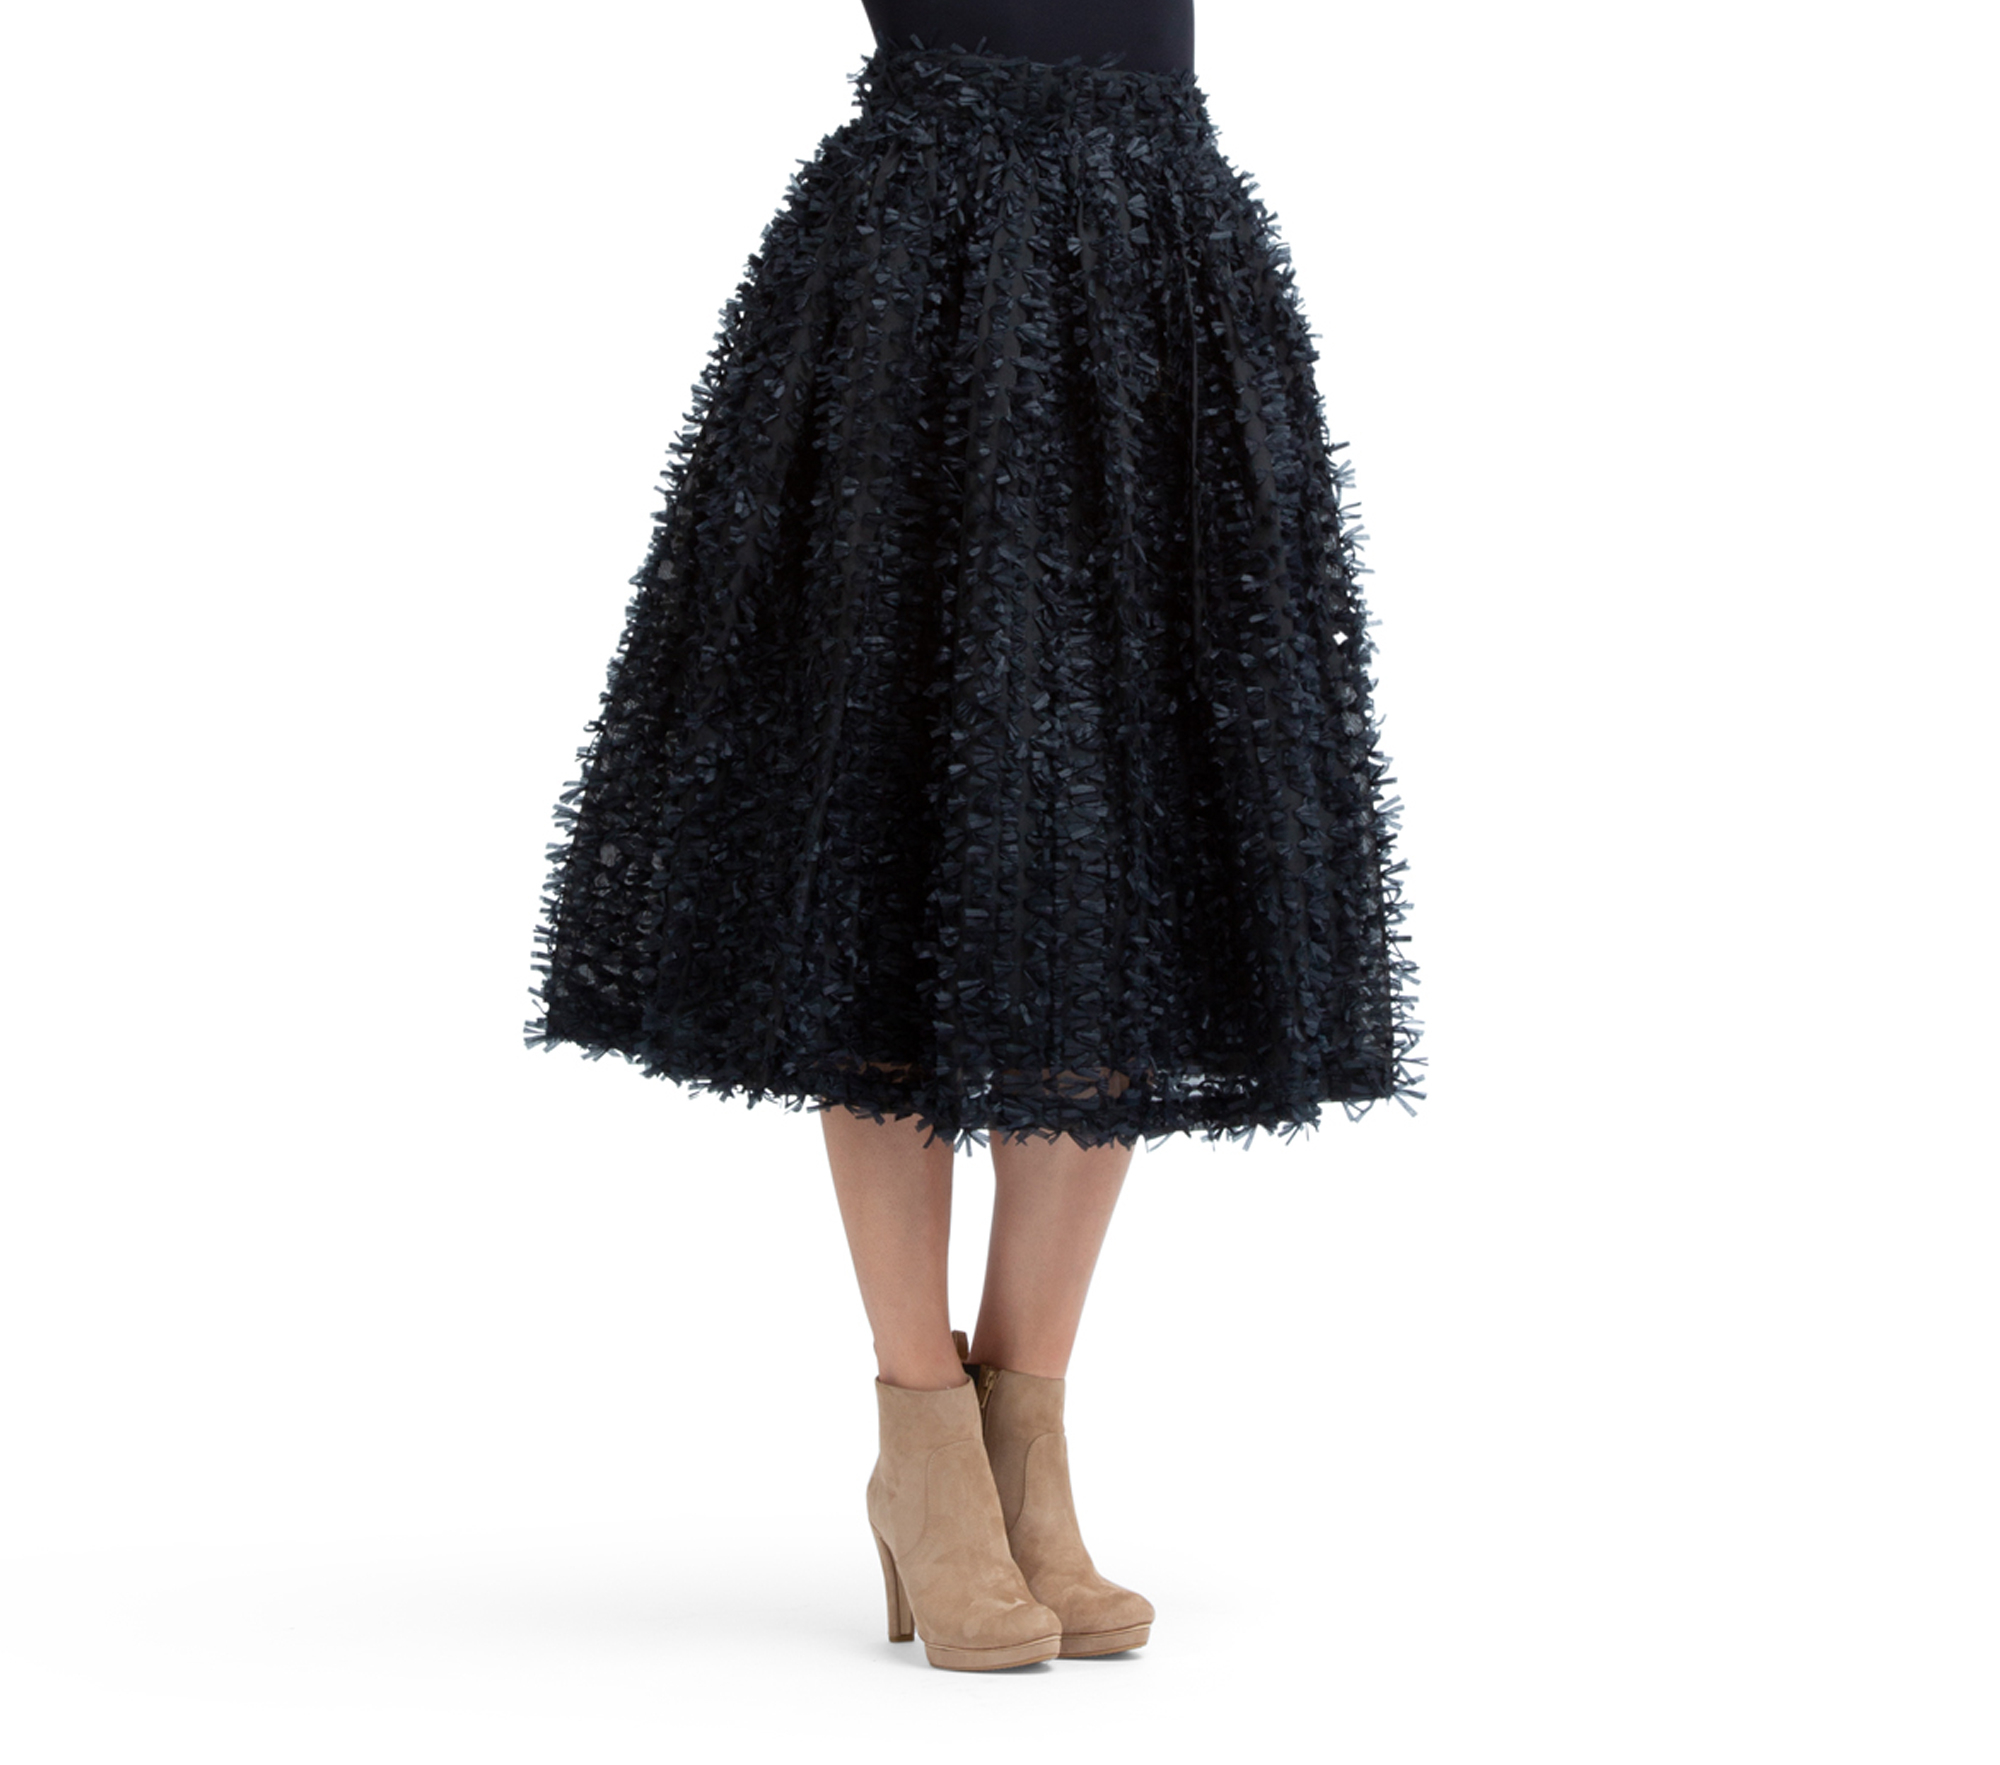 Opéra long-lenght tutu skirt